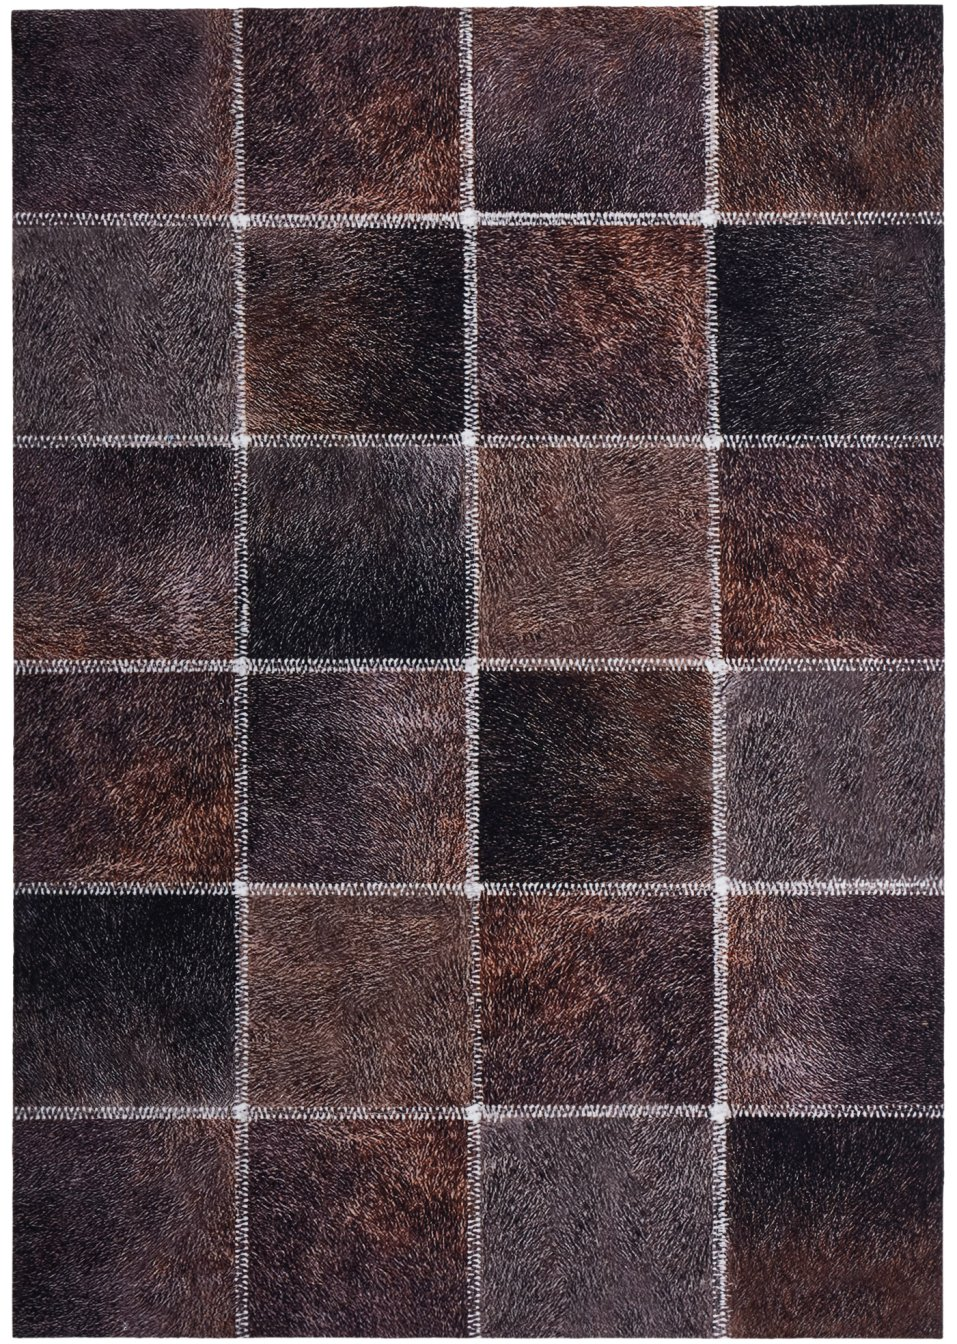 tapis imitation peau de b te marron imprim bpc living commande online. Black Bedroom Furniture Sets. Home Design Ideas